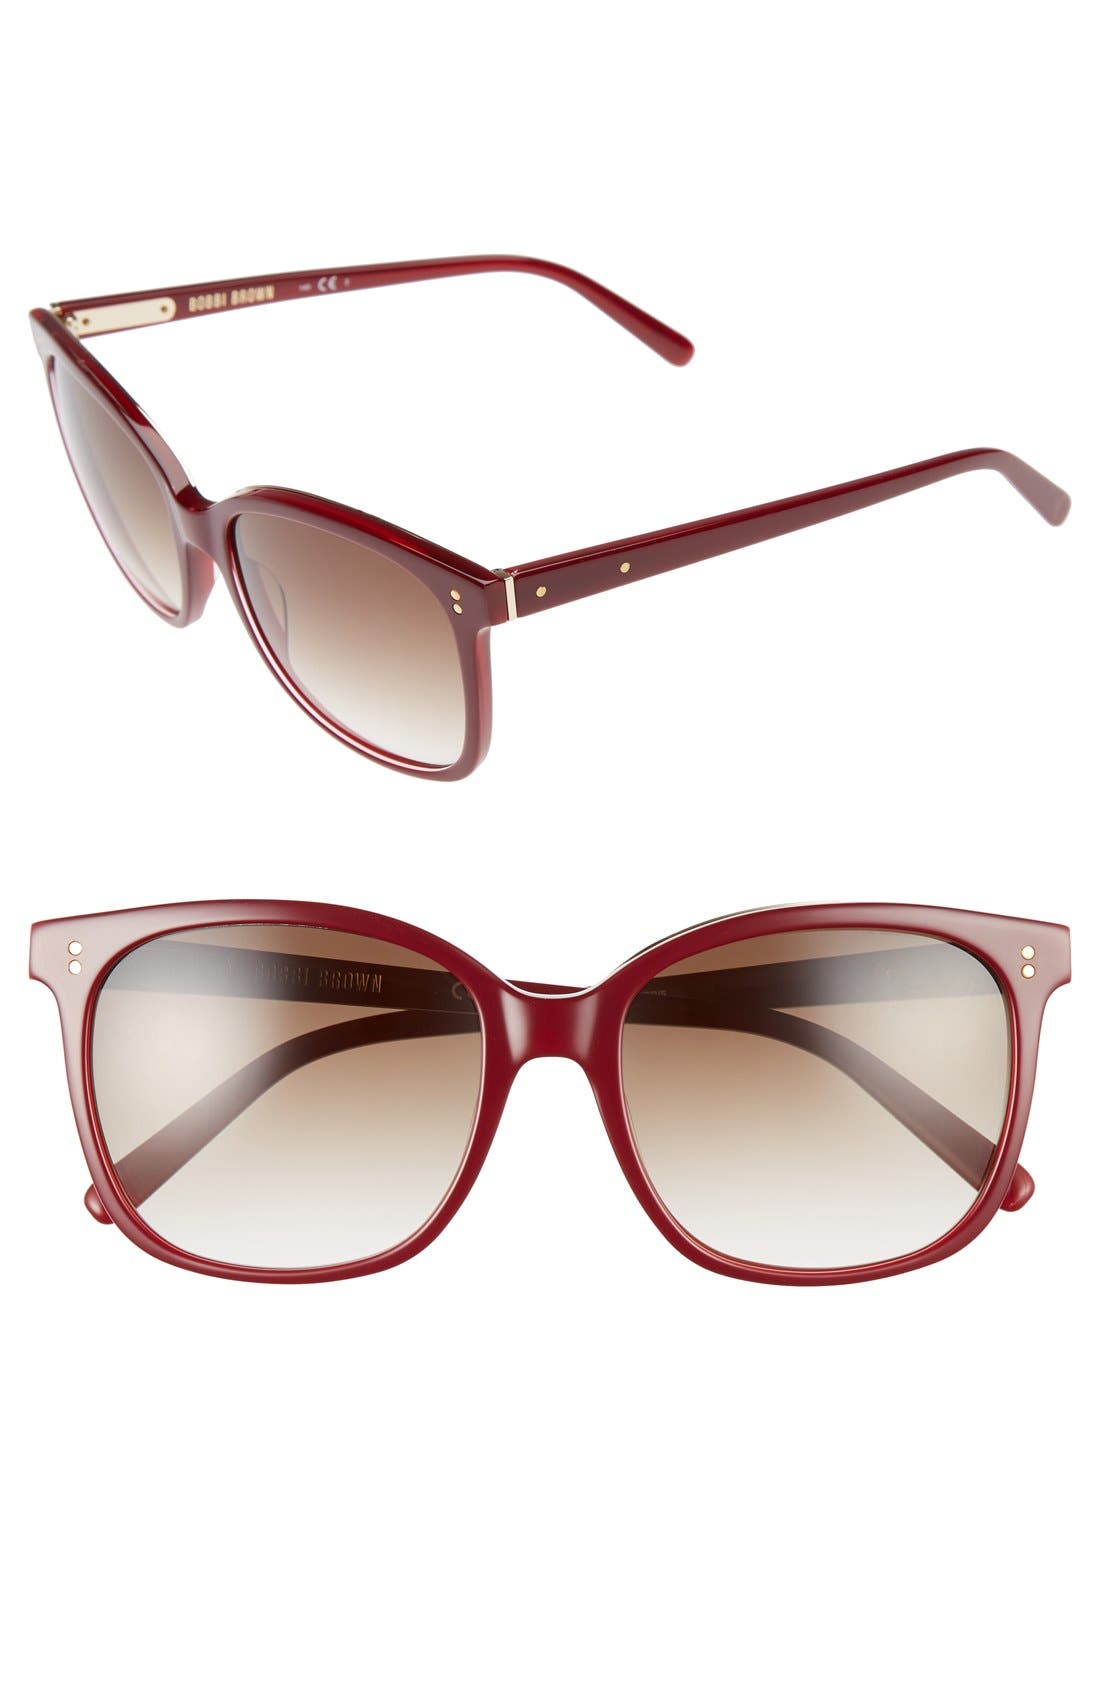 Bobbi Brown The Whitner 54mm Sunglasses